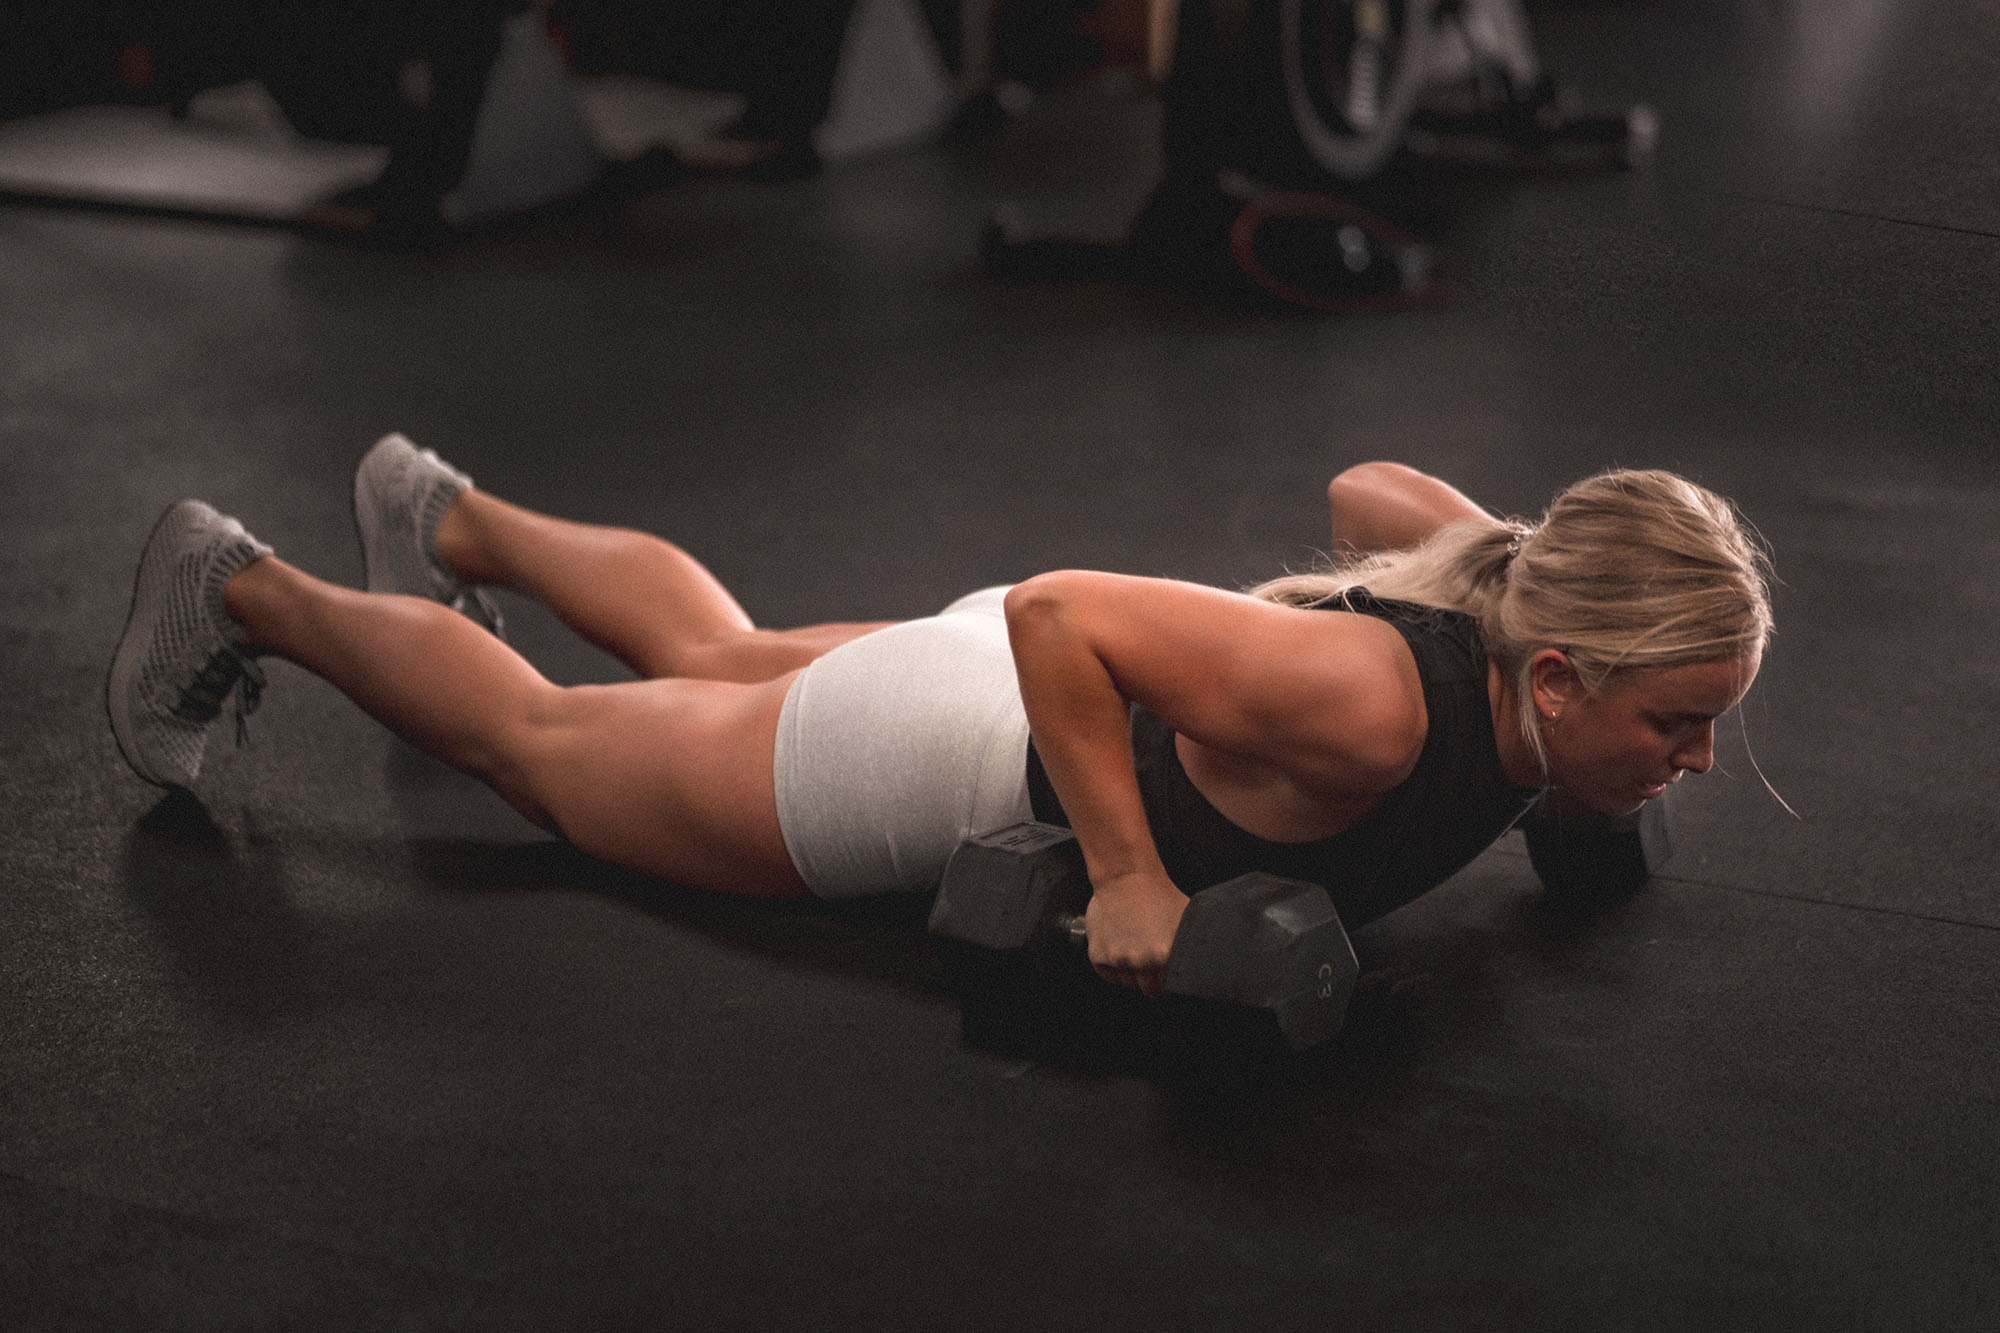 woman using weights working on strength training